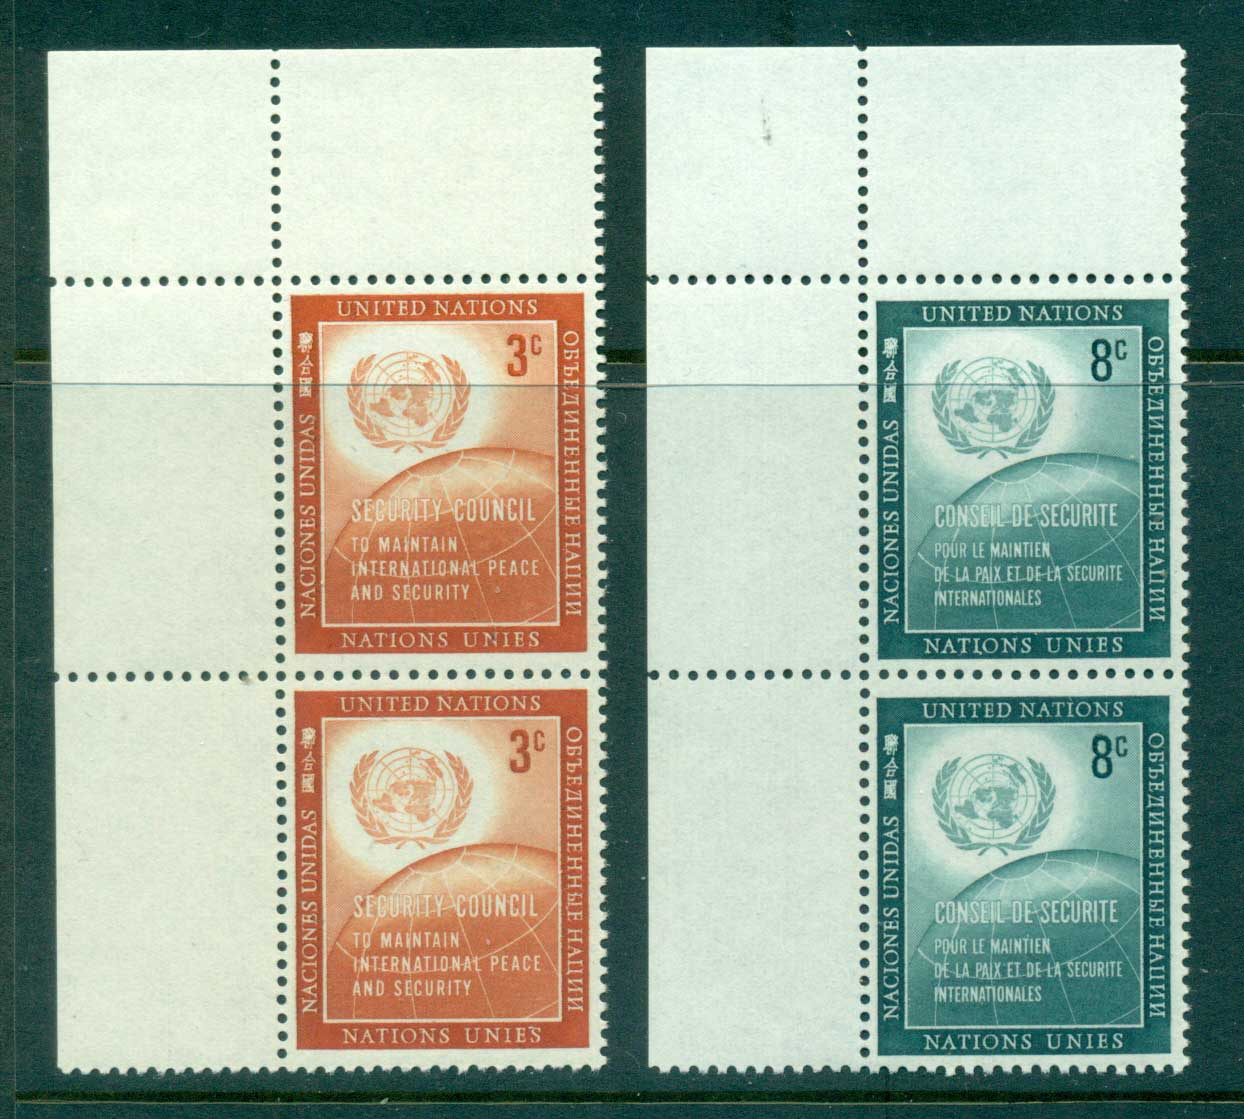 UN New York 1957 Honouring the Security Council pair MUH lot40895